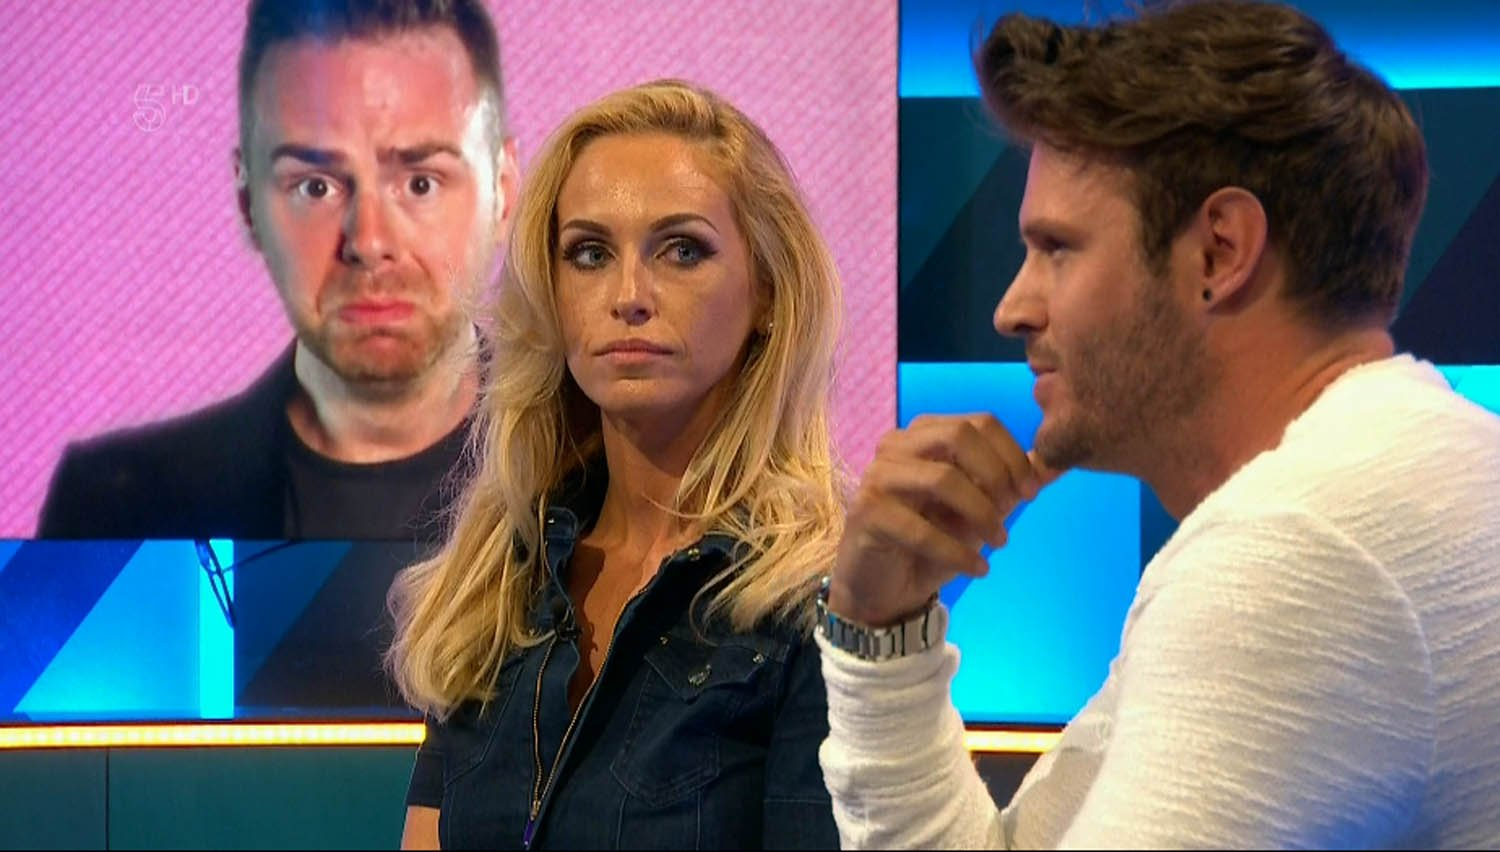 """****Ruckas Videograbs**** (01322) 861777 *IMPORTANT* Please credit Channel 5 for this picture. 13/07/16 Big Brother's Bit On The Side - last night (12th July, 2016), Channel 5 Grabs from last night's BB spin-off show which saw an awkward reunion bwtween Josie Gibson and John James Parton. The former lovers, who met on Big Brother, hadn't seen each for six years and it proved very awkward when John James was introduced onto last night's panel - which Josie was already sitting on. Things didn't get any easier when fellow panelist Jake Quickenden joked that Josie had secretly told him that John James was a """"grower"""" - much to the horror and embarrassment of Josie. Office (UK) : 01322 861777 Mobile (UK) : 07742 164 106 **IMPORTANT - PLEASE READ** The video grabs supplied by Ruckas Pictures always remain the copyright of the programme makers, we provide a service to purely capture and supply the images to the client, securing the copyright of the images will always remain the responsibility of the publisher at all times. Standard terms, conditions & minimum fees apply to our videograbs unless varied by agreement prior to publication."""